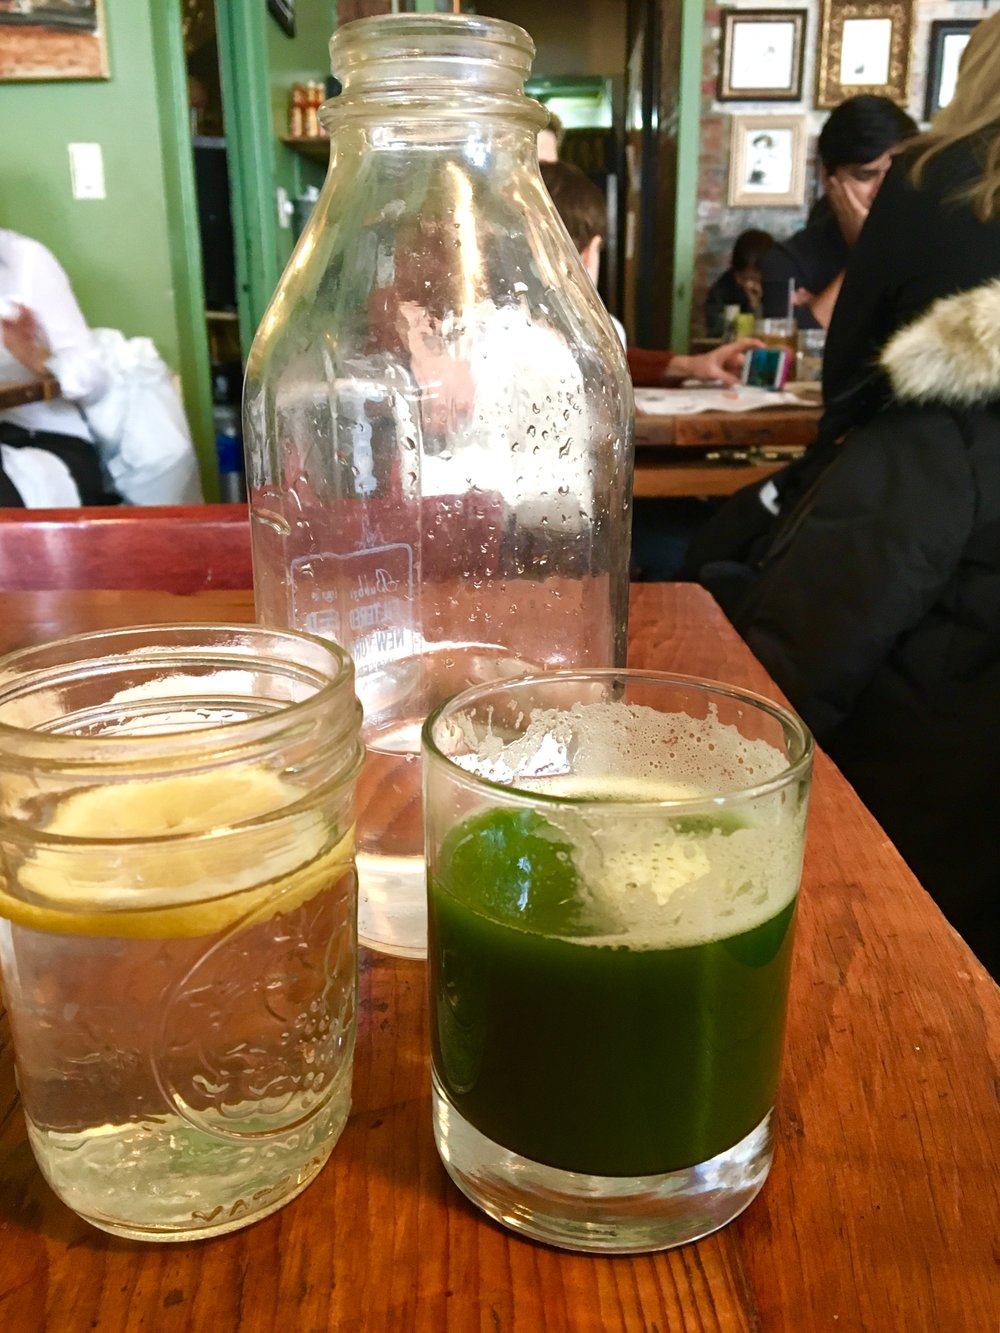 Green Kale juice